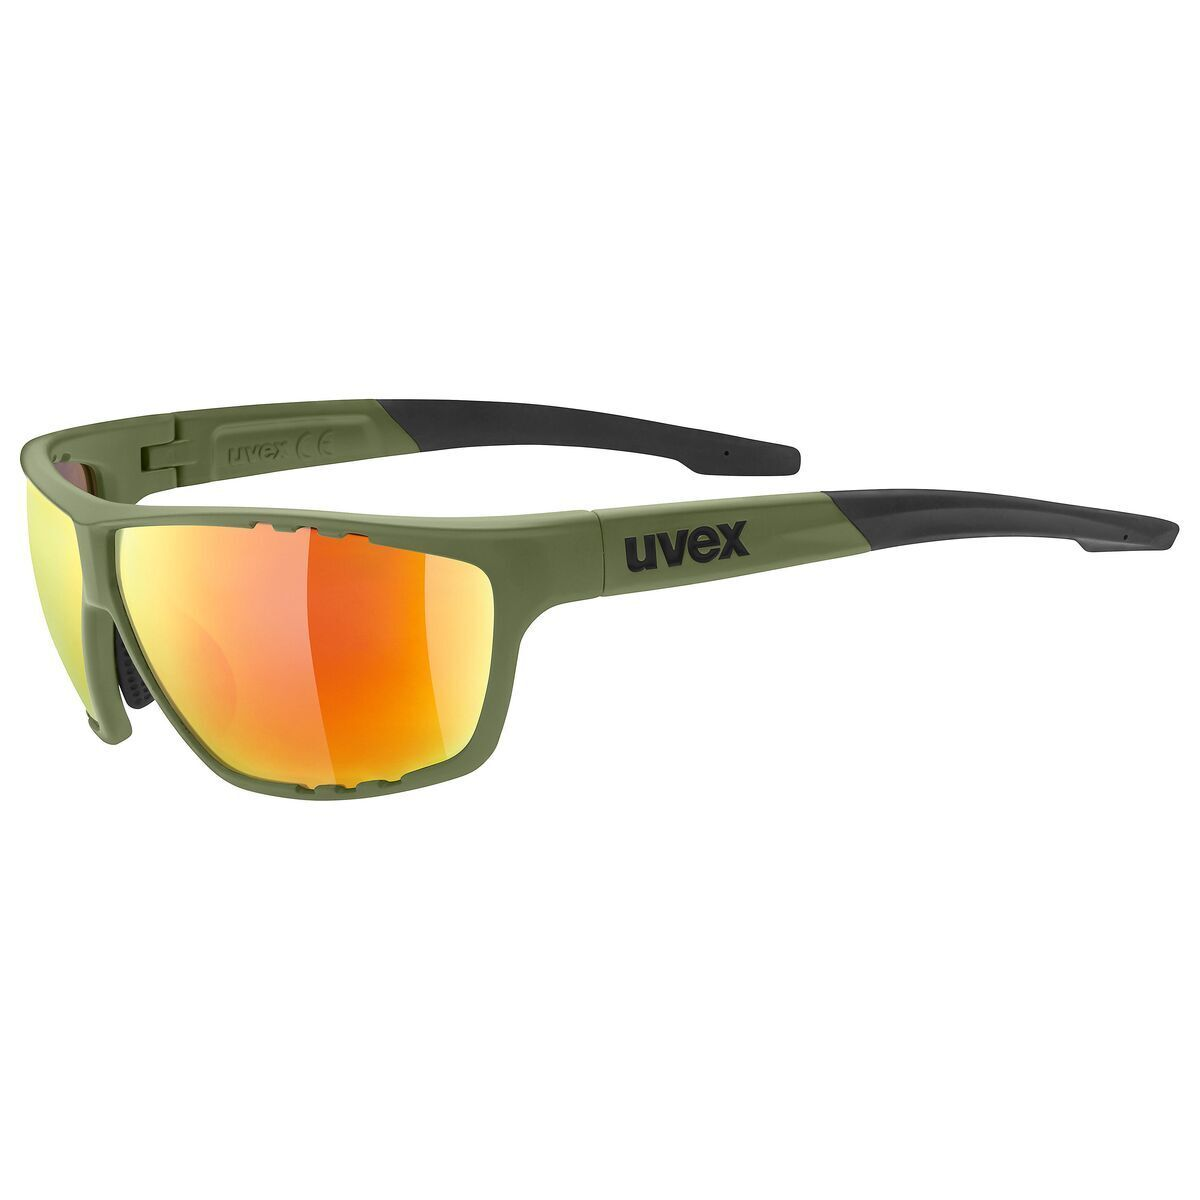 Uvex Sportstyle 706 Fahrrad Brille olive green